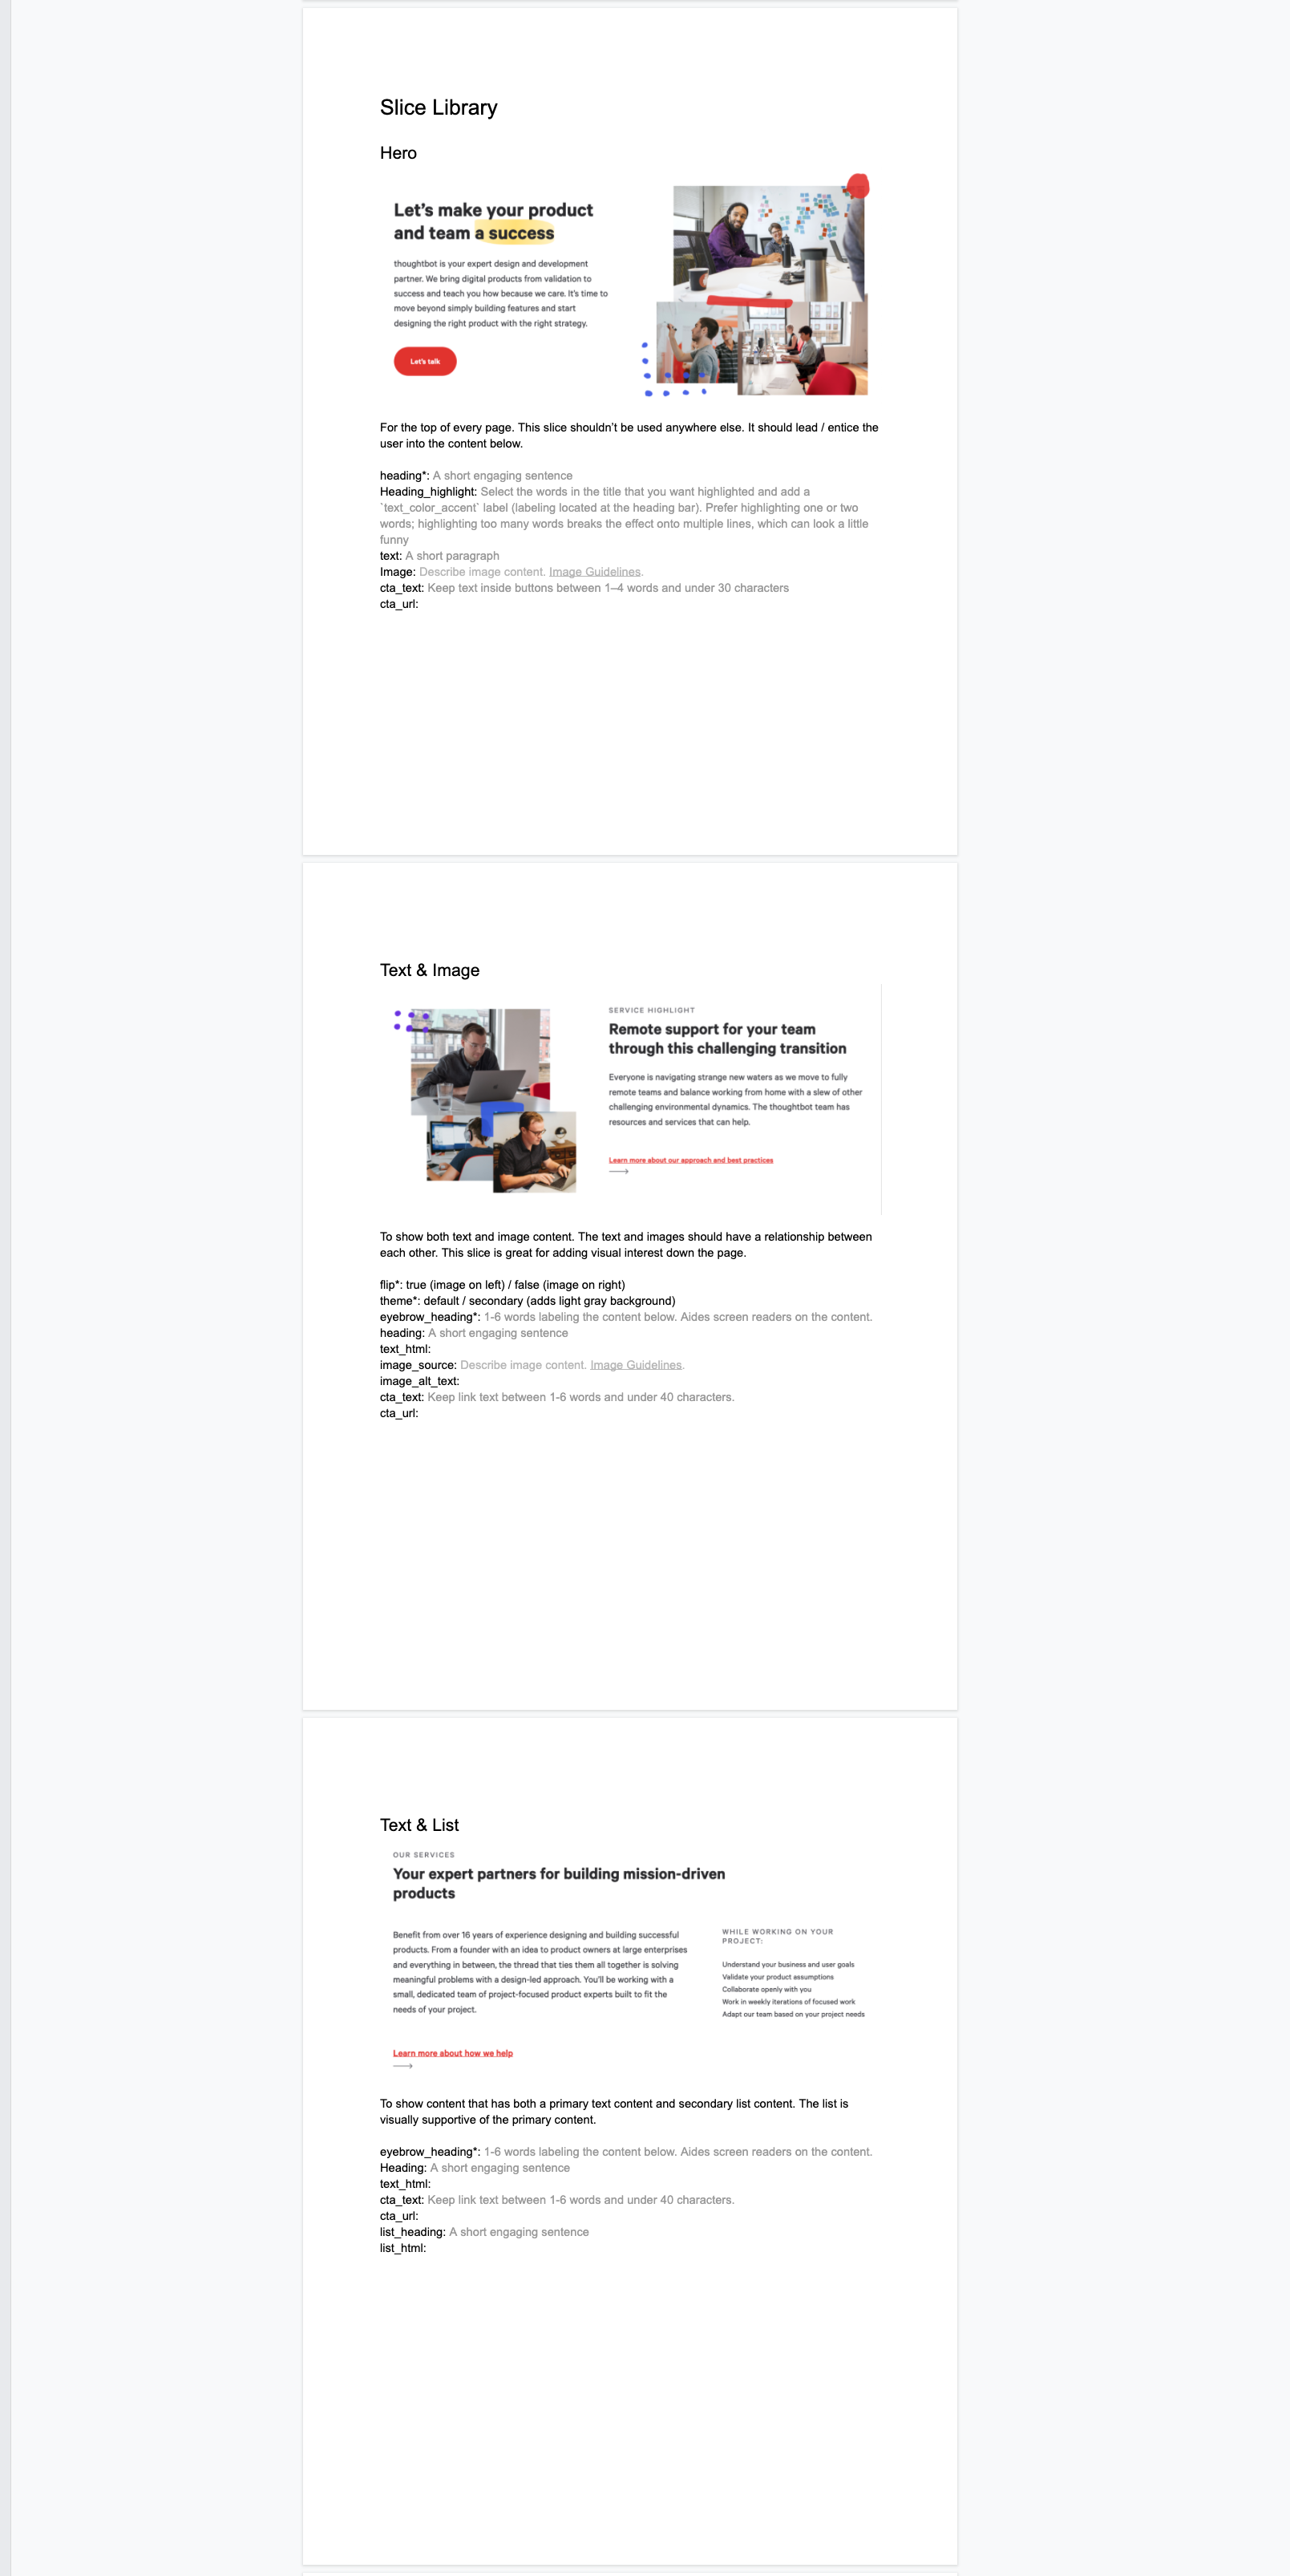 A screenshot of a few of the slice documentation for the Marketing team